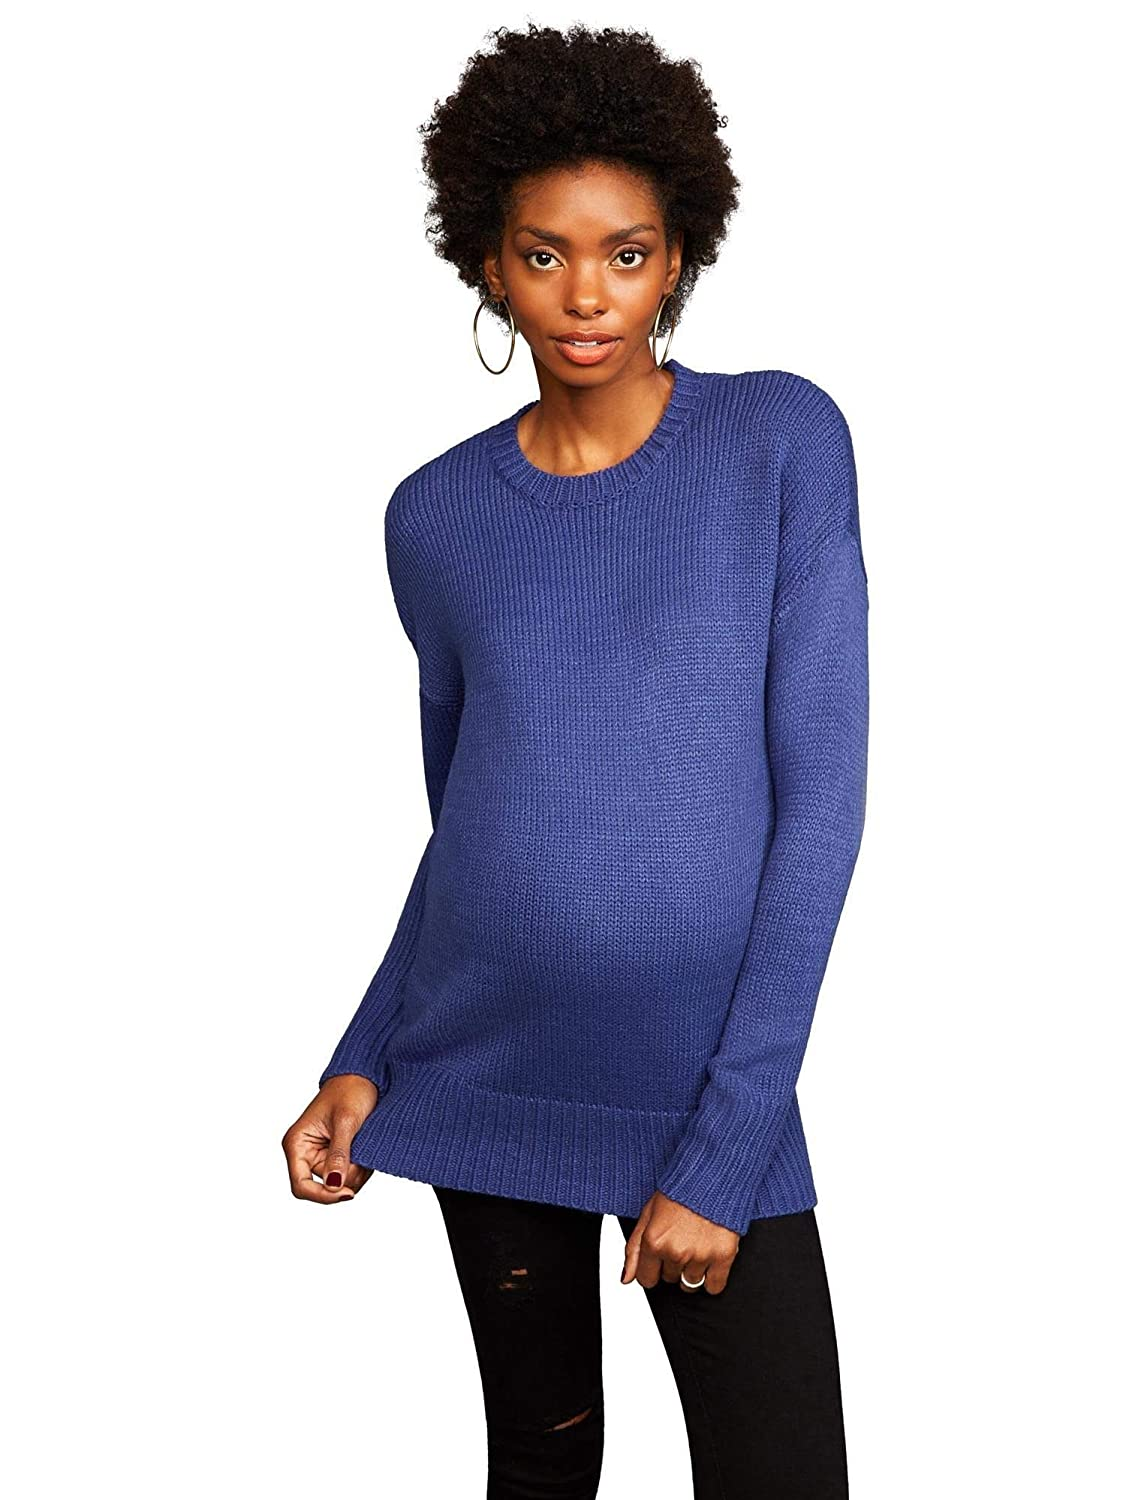 5f72fffc6c9a3 Lace Back Maternity Pull Over at Amazon Women's Clothing store: